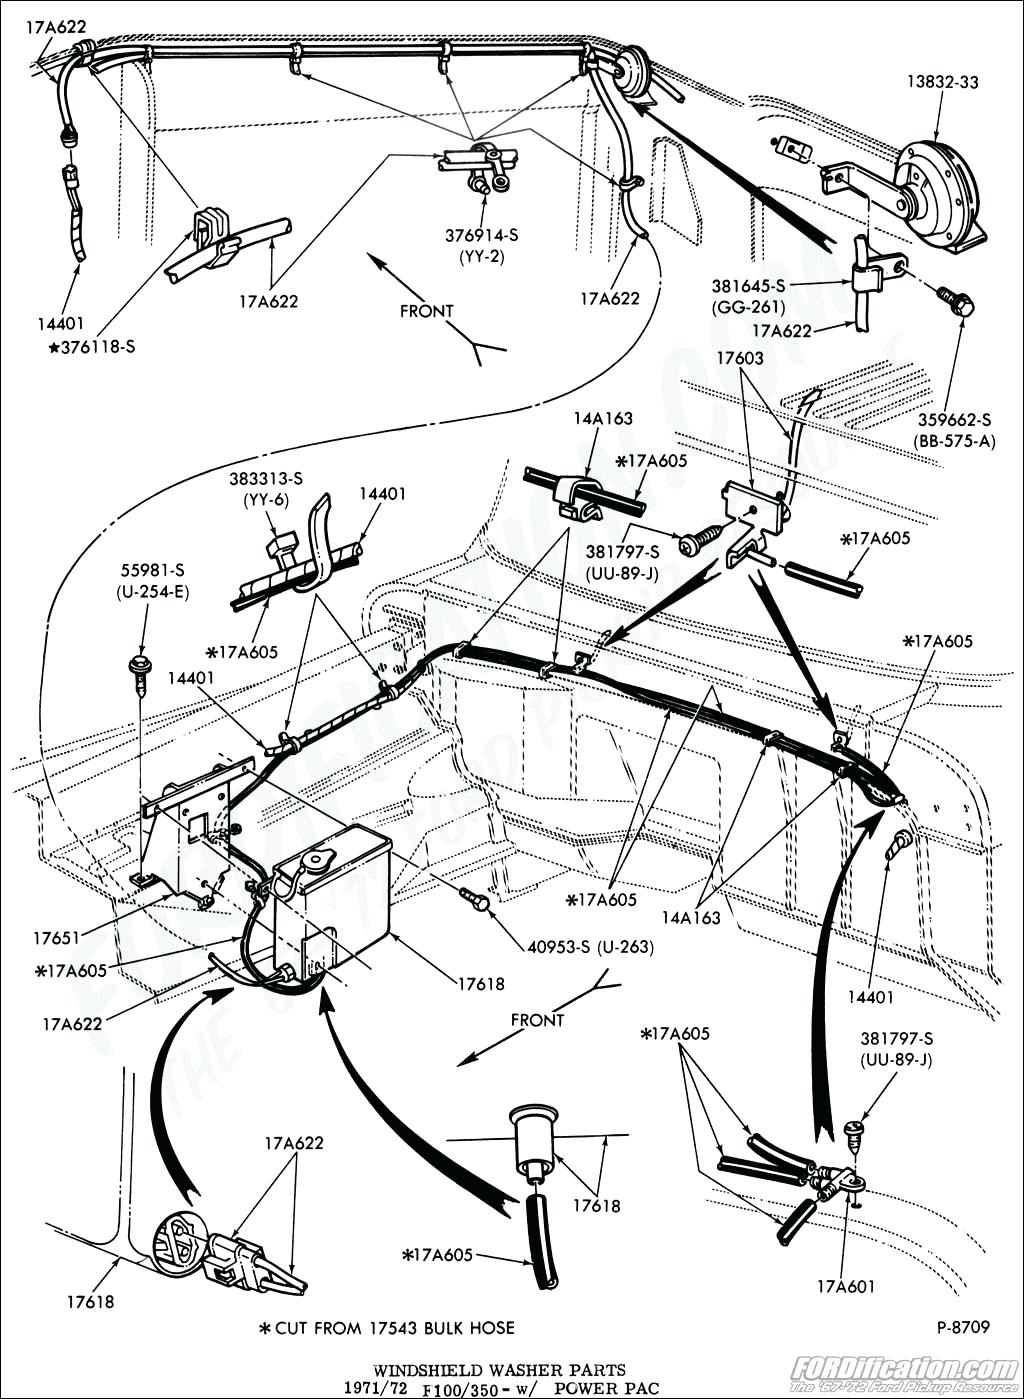 electrical drawing at getdrawings free for personal use 1976 Chevelle Wiring Diagram 1024x1399 diagram 2002 ford f350 fuse box diagram